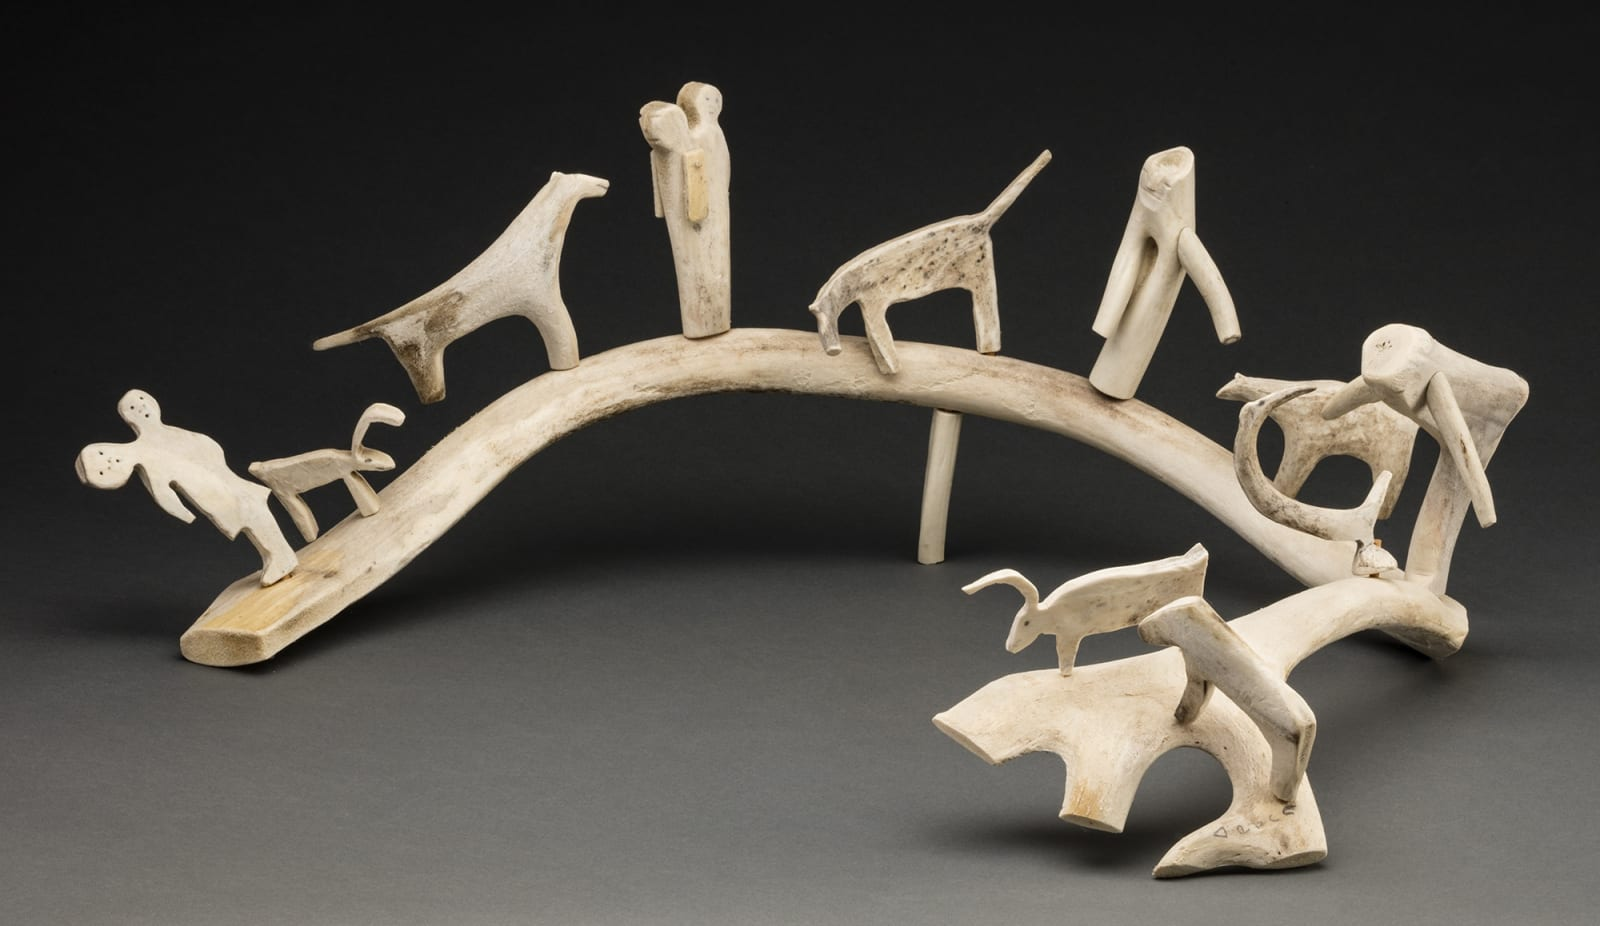 Lot 28 LUKE ANOWTALIK (1932-2006) ARVIAT (ESKIMO POINT) Composition with People and Animals, 2005 antler, graphite, sinew, and wood, 8.75 x 28.5 x 19.5 in (22.2 x 72.4 x 49.5 cm) Estimate: $6,000 — $9,000